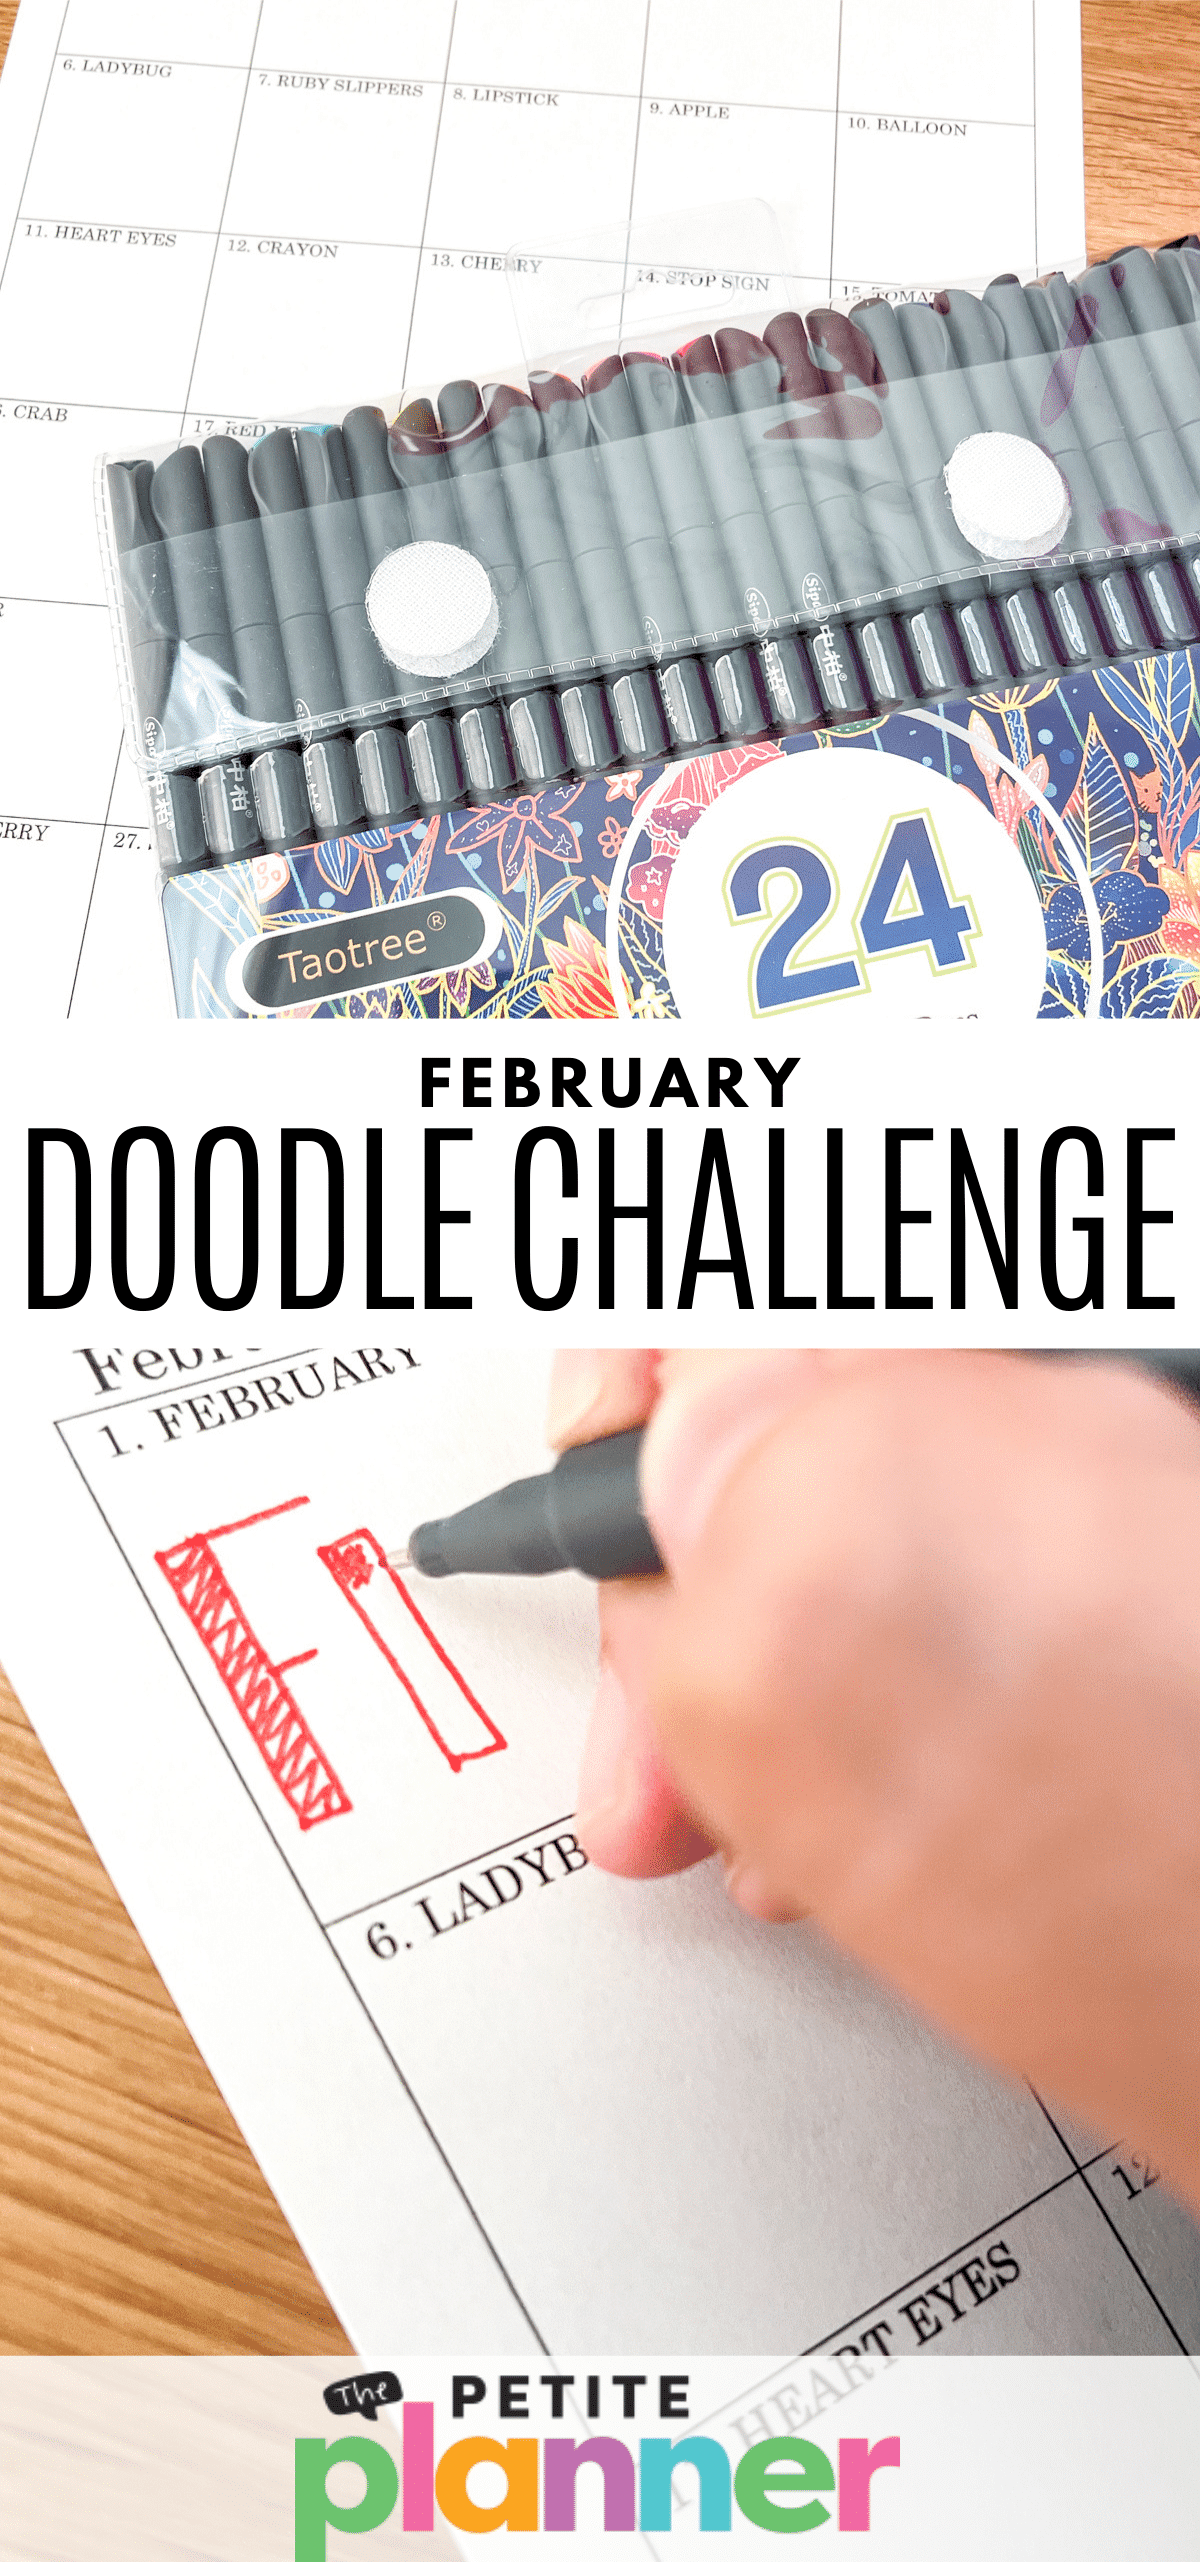 February Drawing Challenge Prompts and Free Printable